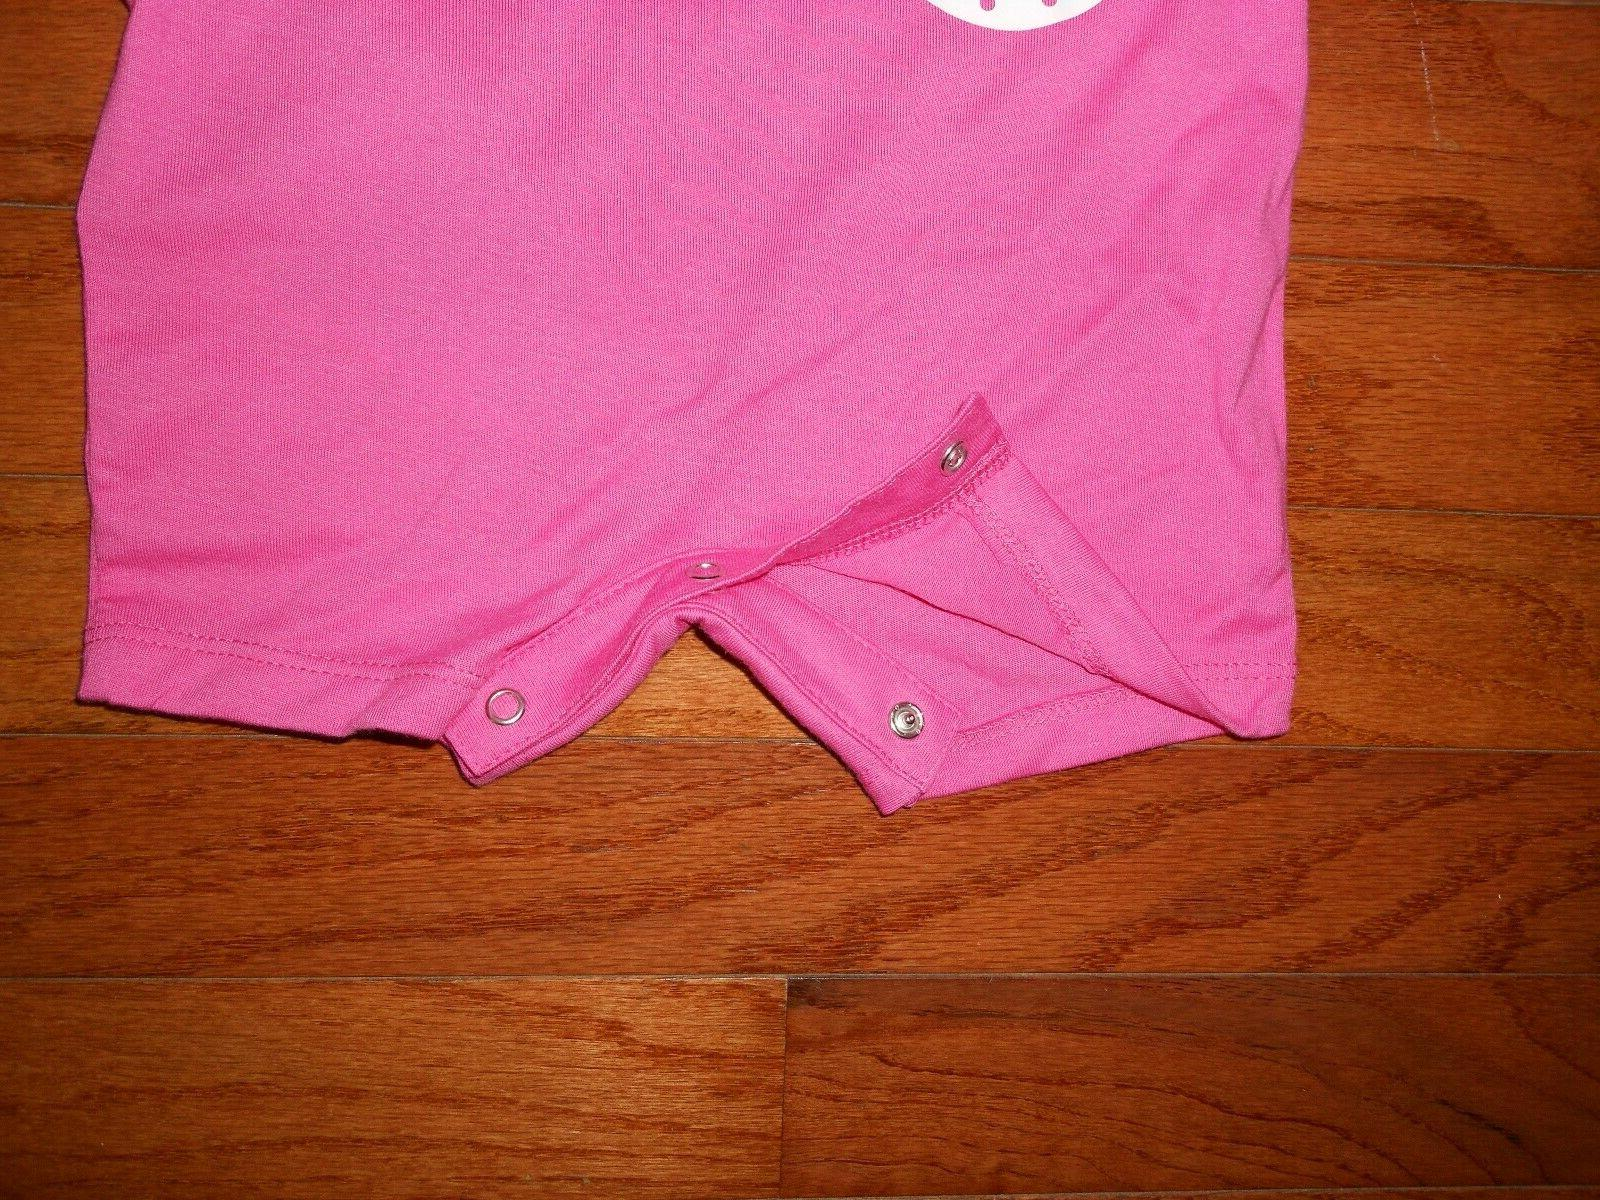 NWT Girls romper outfit, size 18M 24M